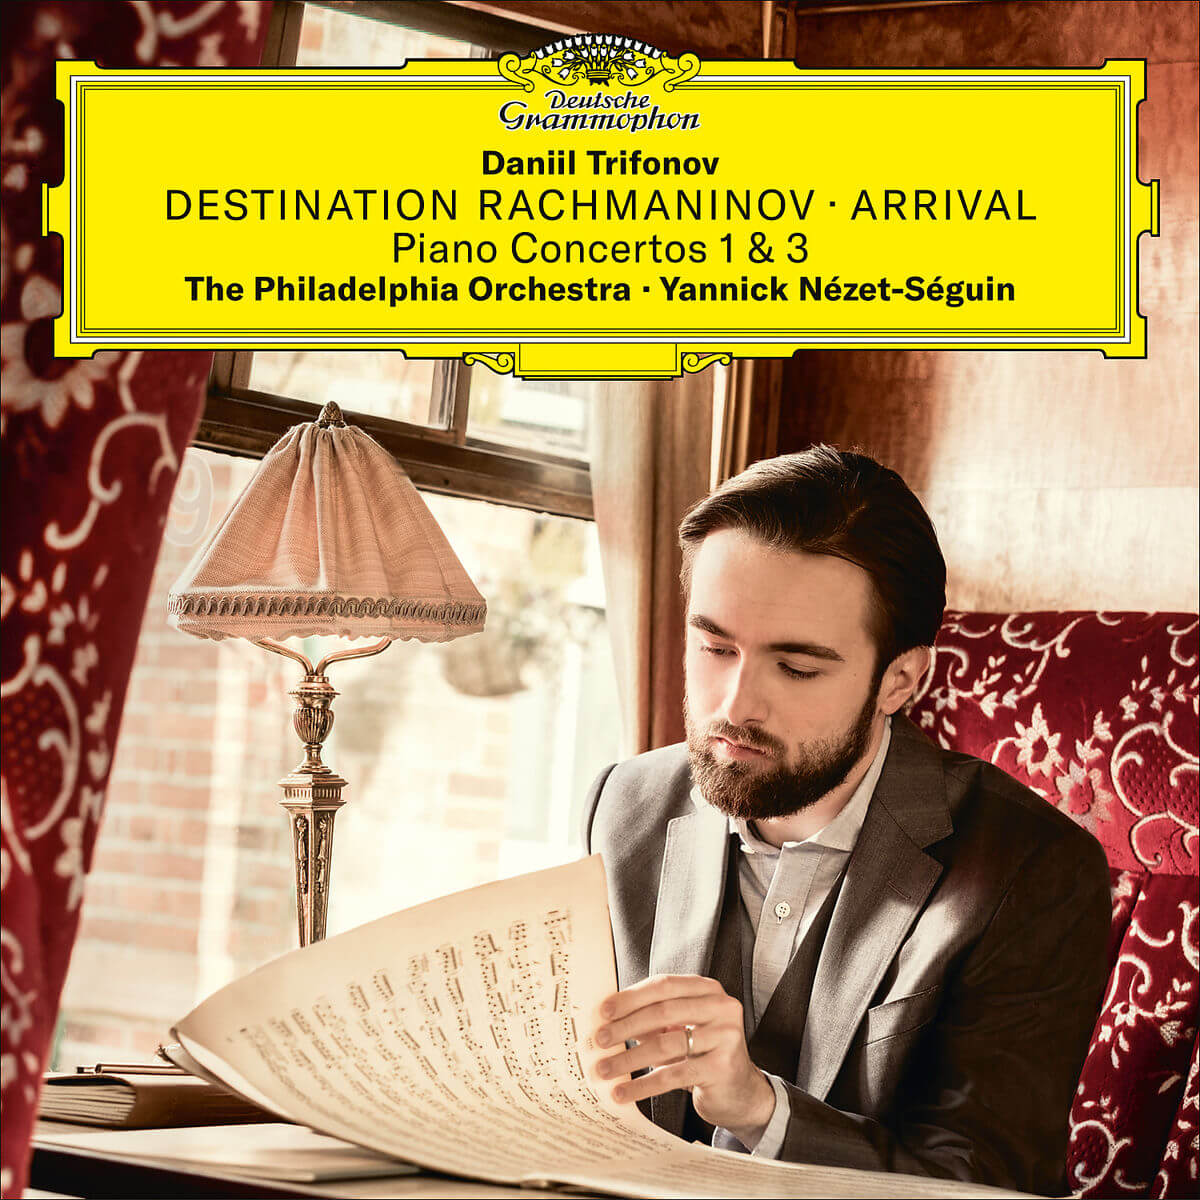 trifonov daniil cd destination rachmaninov arrival piano concertos 1 3 nezet-seguin cd deutsche grammophon cd critique review classiquenews - copie